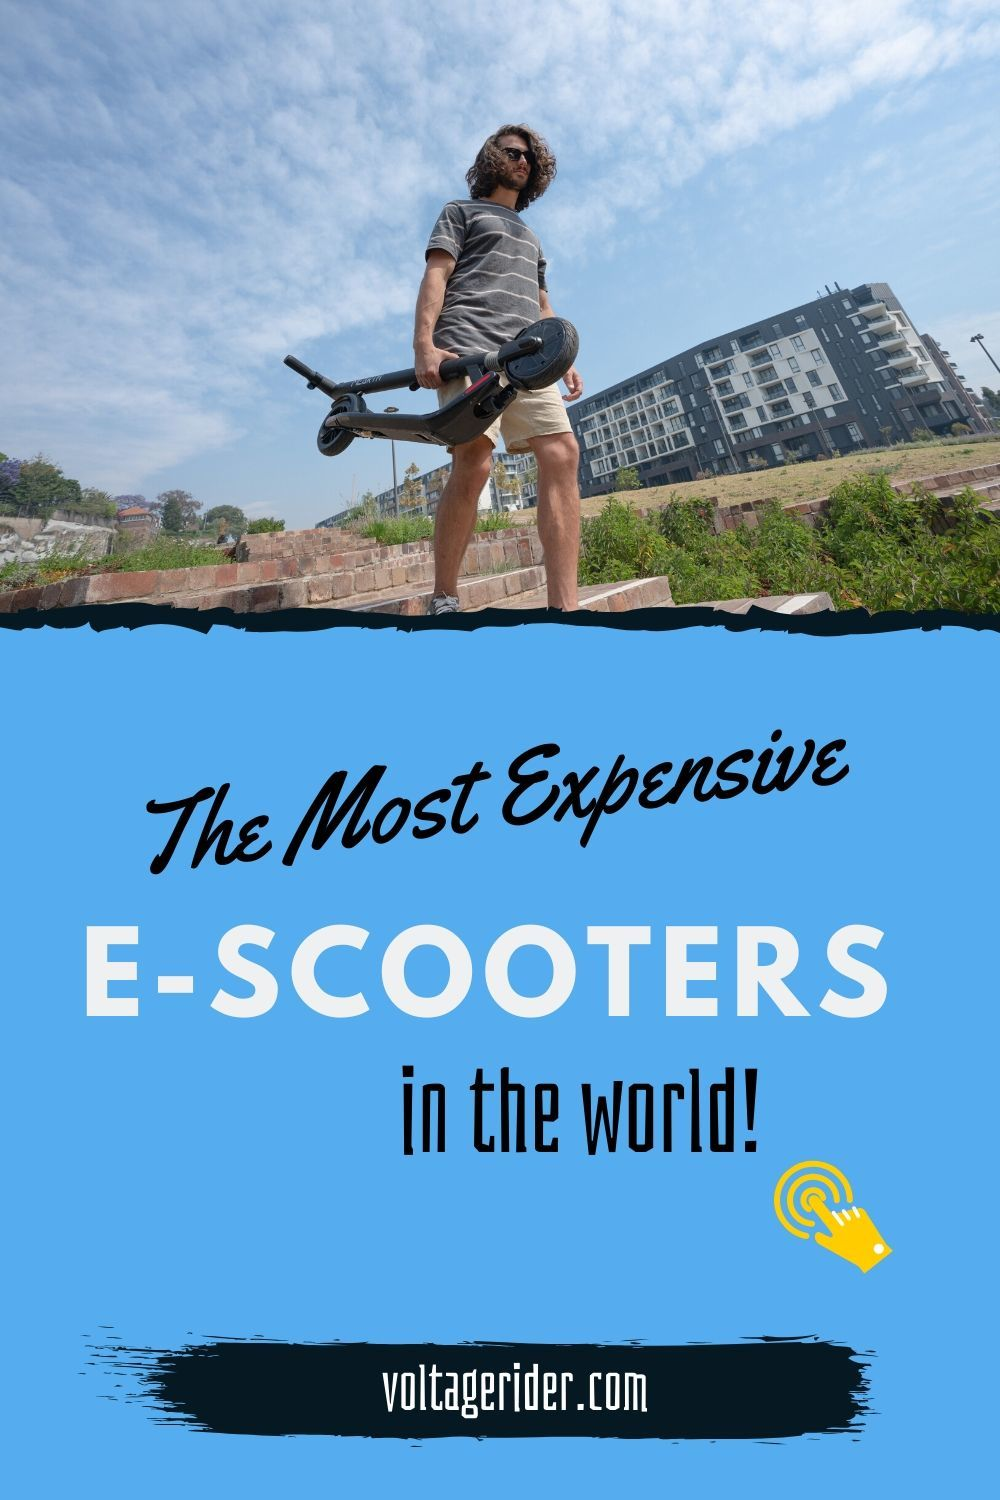 There is a man with electric scooter in his hands.